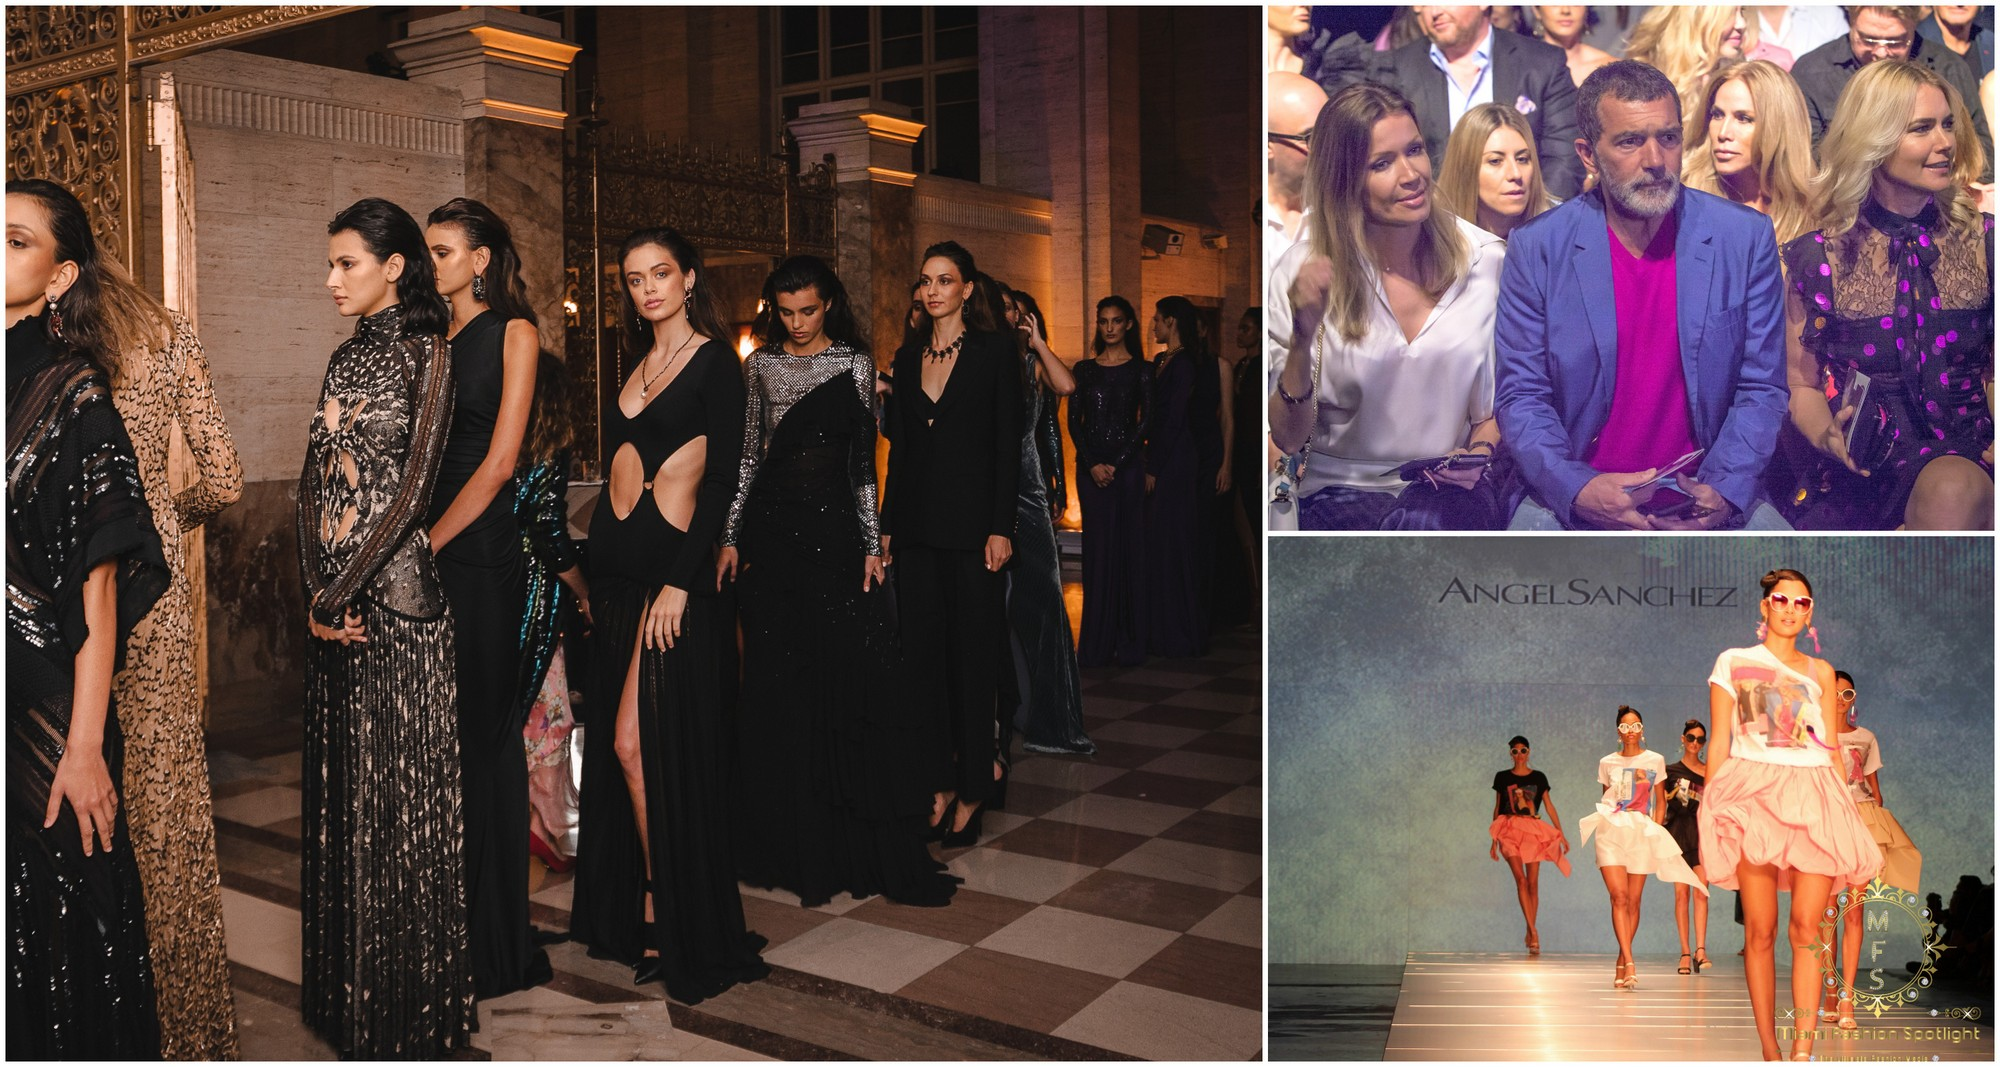 Miami Fashion Week 2018: From the runways to the parties